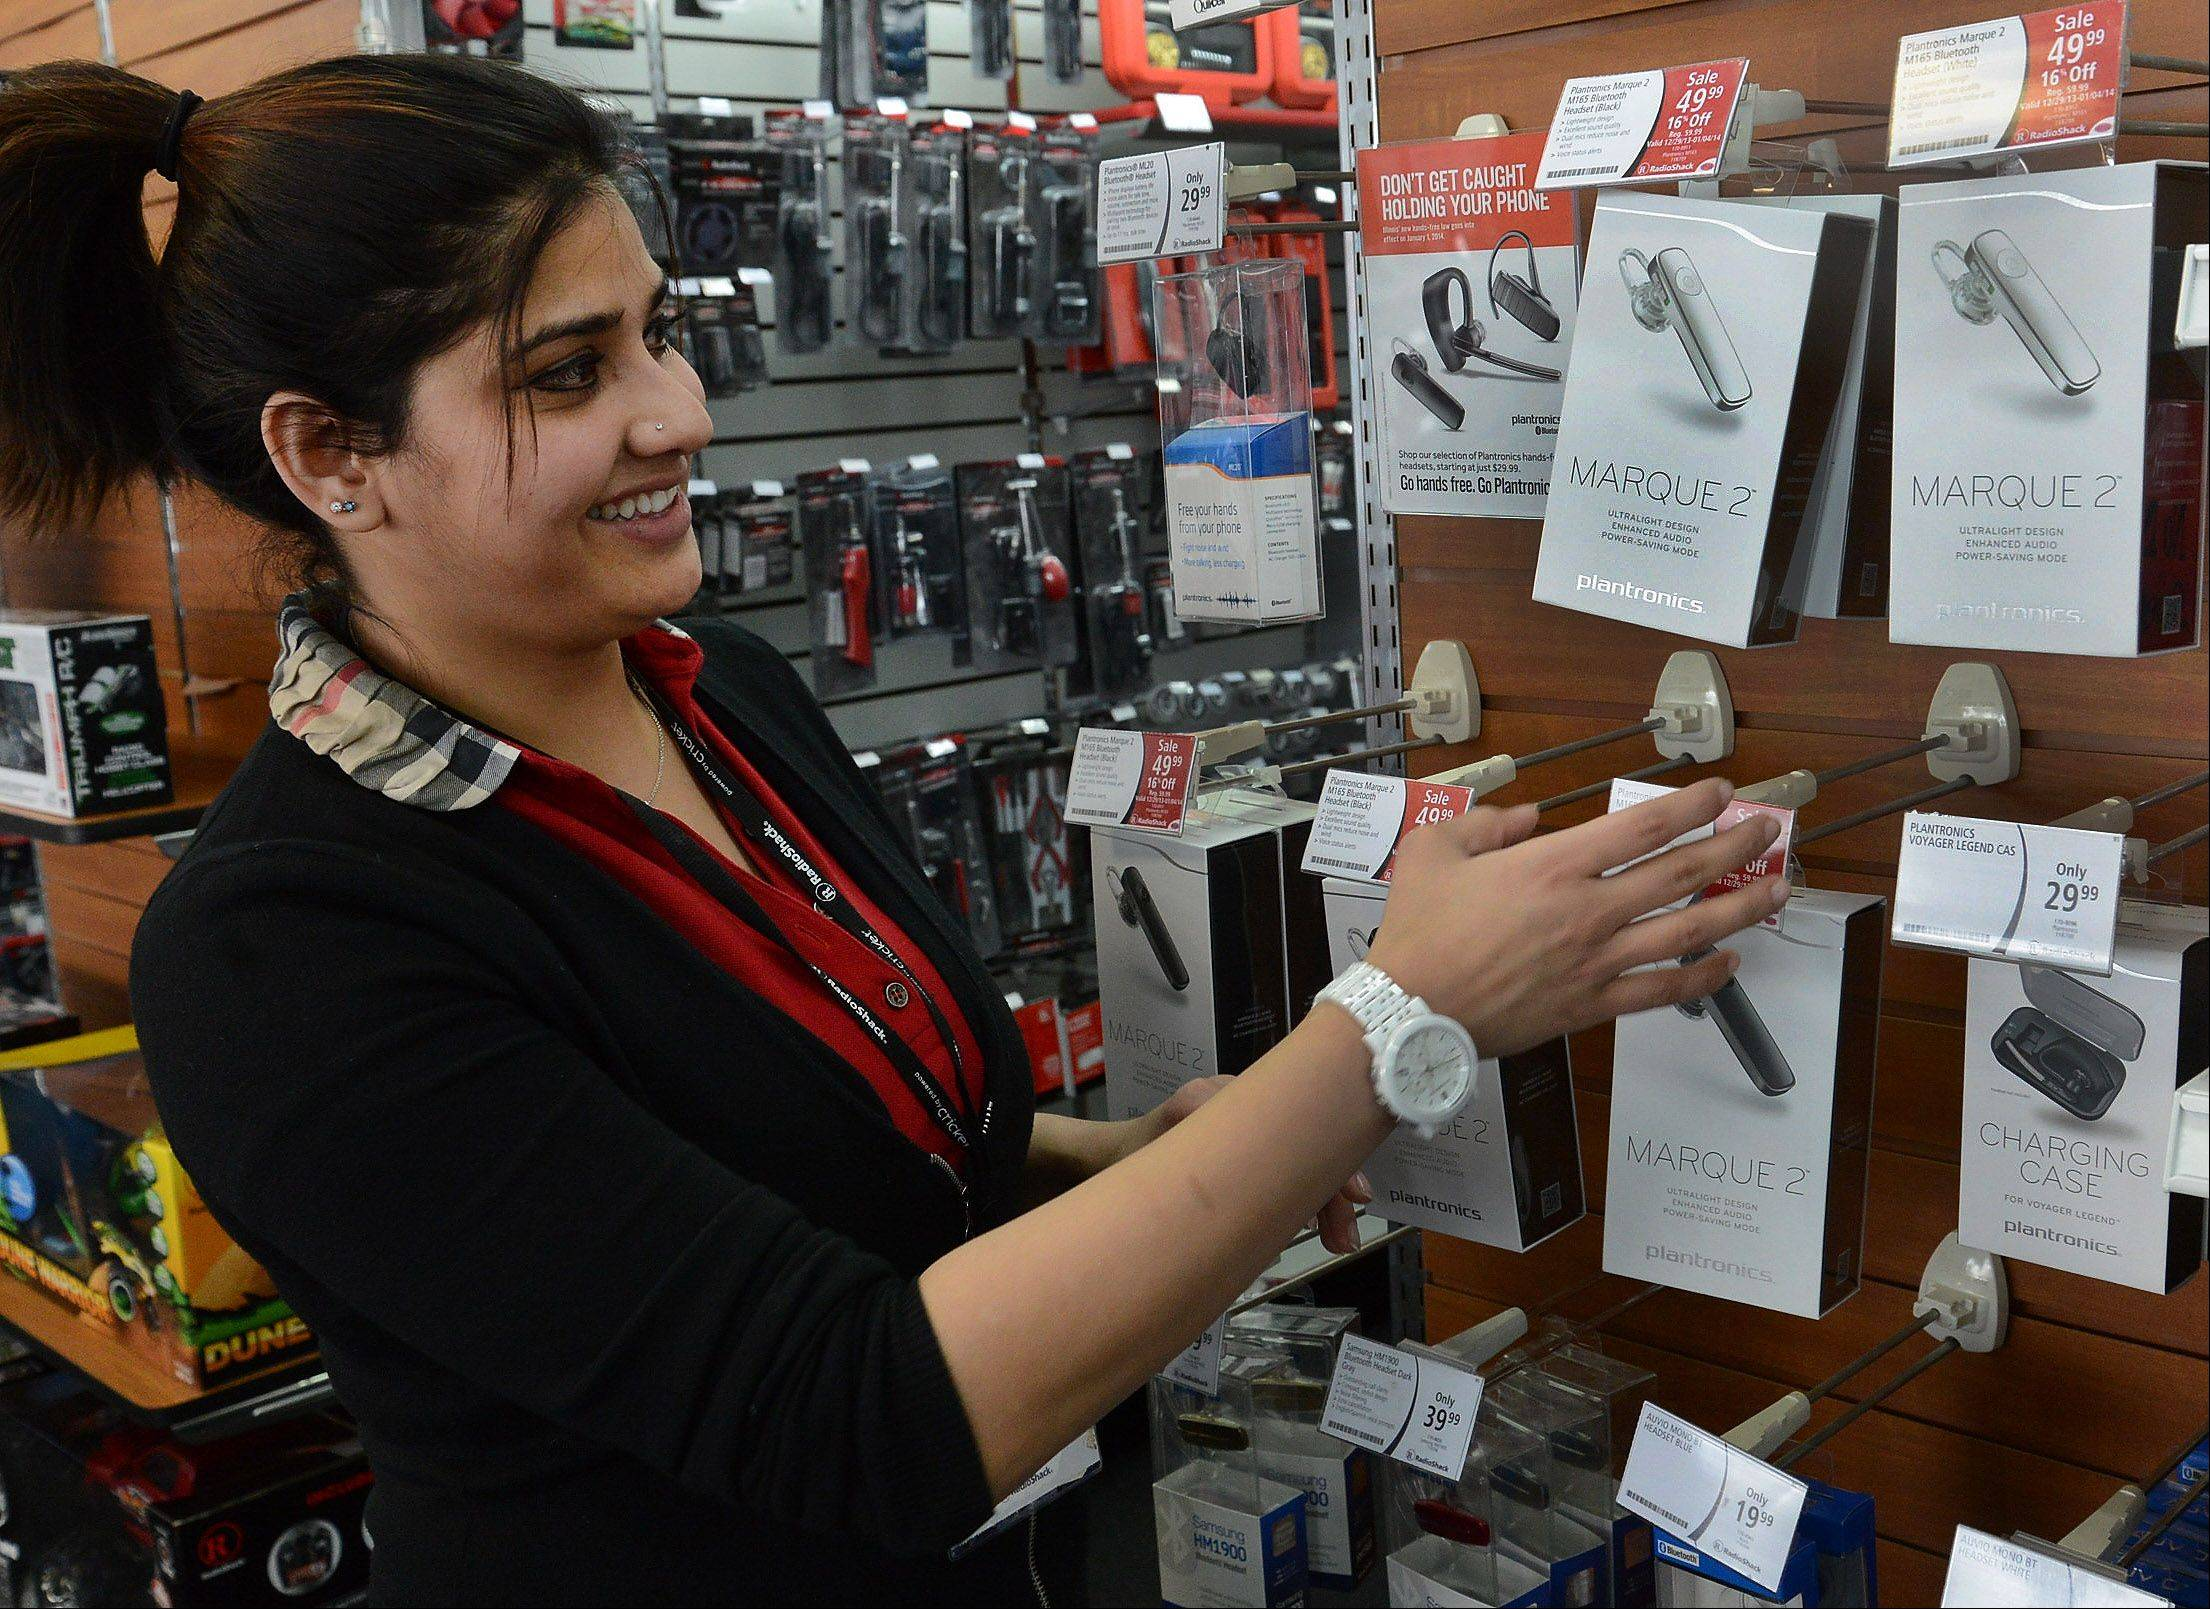 Arlington Heights Radio Shack store manager Sadaf Farooqui shows the various Bluetooth devices available at her store. Sales of Bluetooth devices have spiked in recent days in suburban electronics and telecommunications stores now that talking on a cellphone behind the wheel without a hands-free device is illegal.